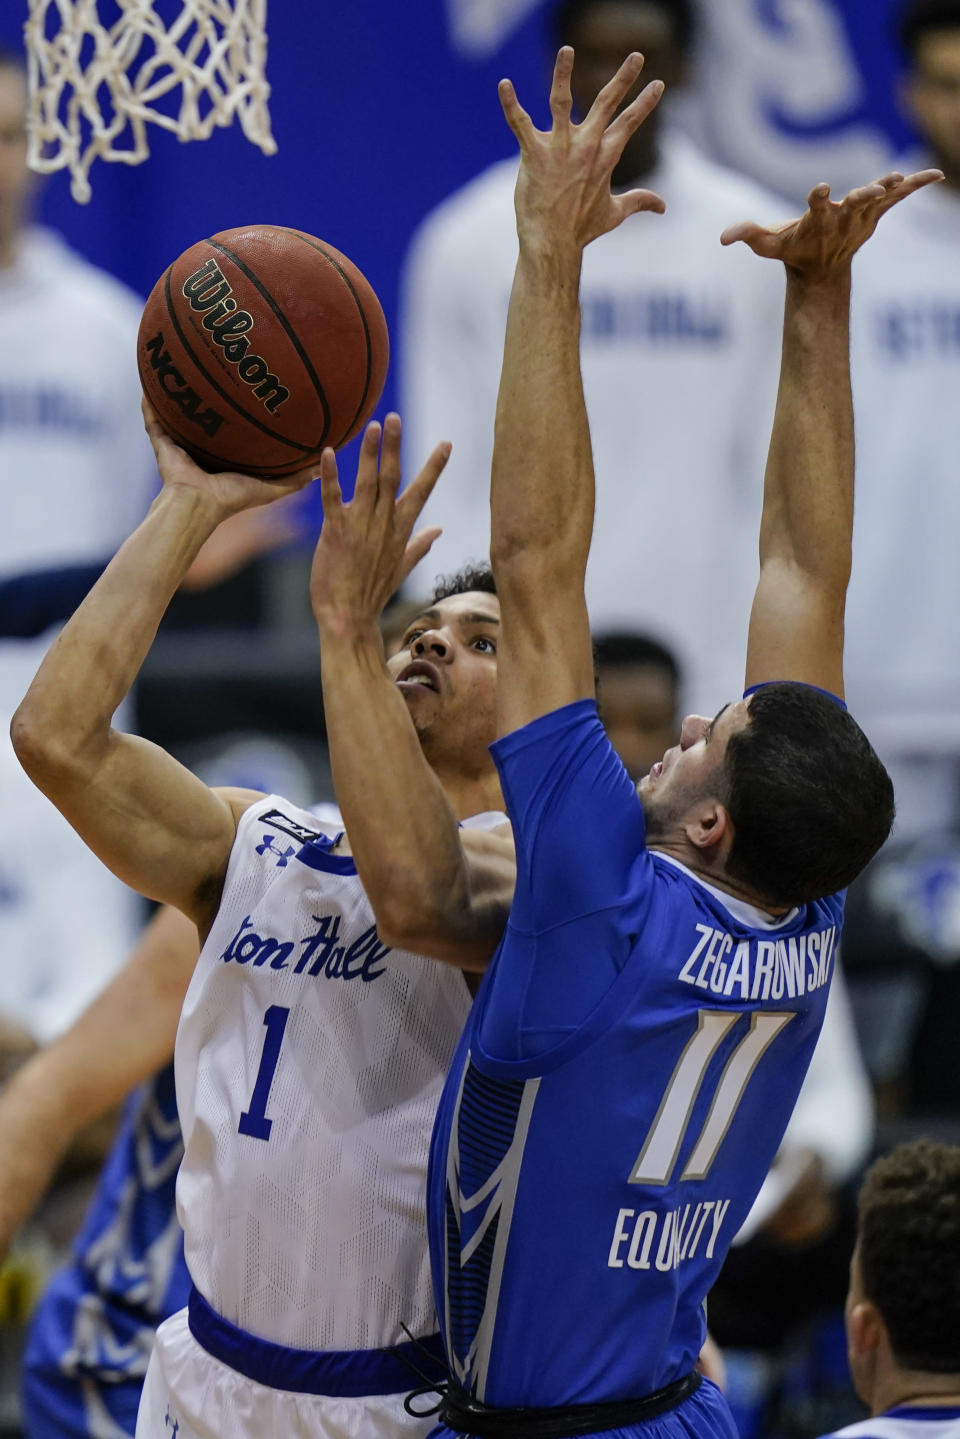 Seton Hall's Bryce Aiken (1) drives past Creighton's Marcus Zegarowski (11) during the second half of an NCAA college basketball game Wednesday, Jan. 27, 2021, in Newark, N.J. Creighton won 85-81. (AP Photo/Frank Franklin II)